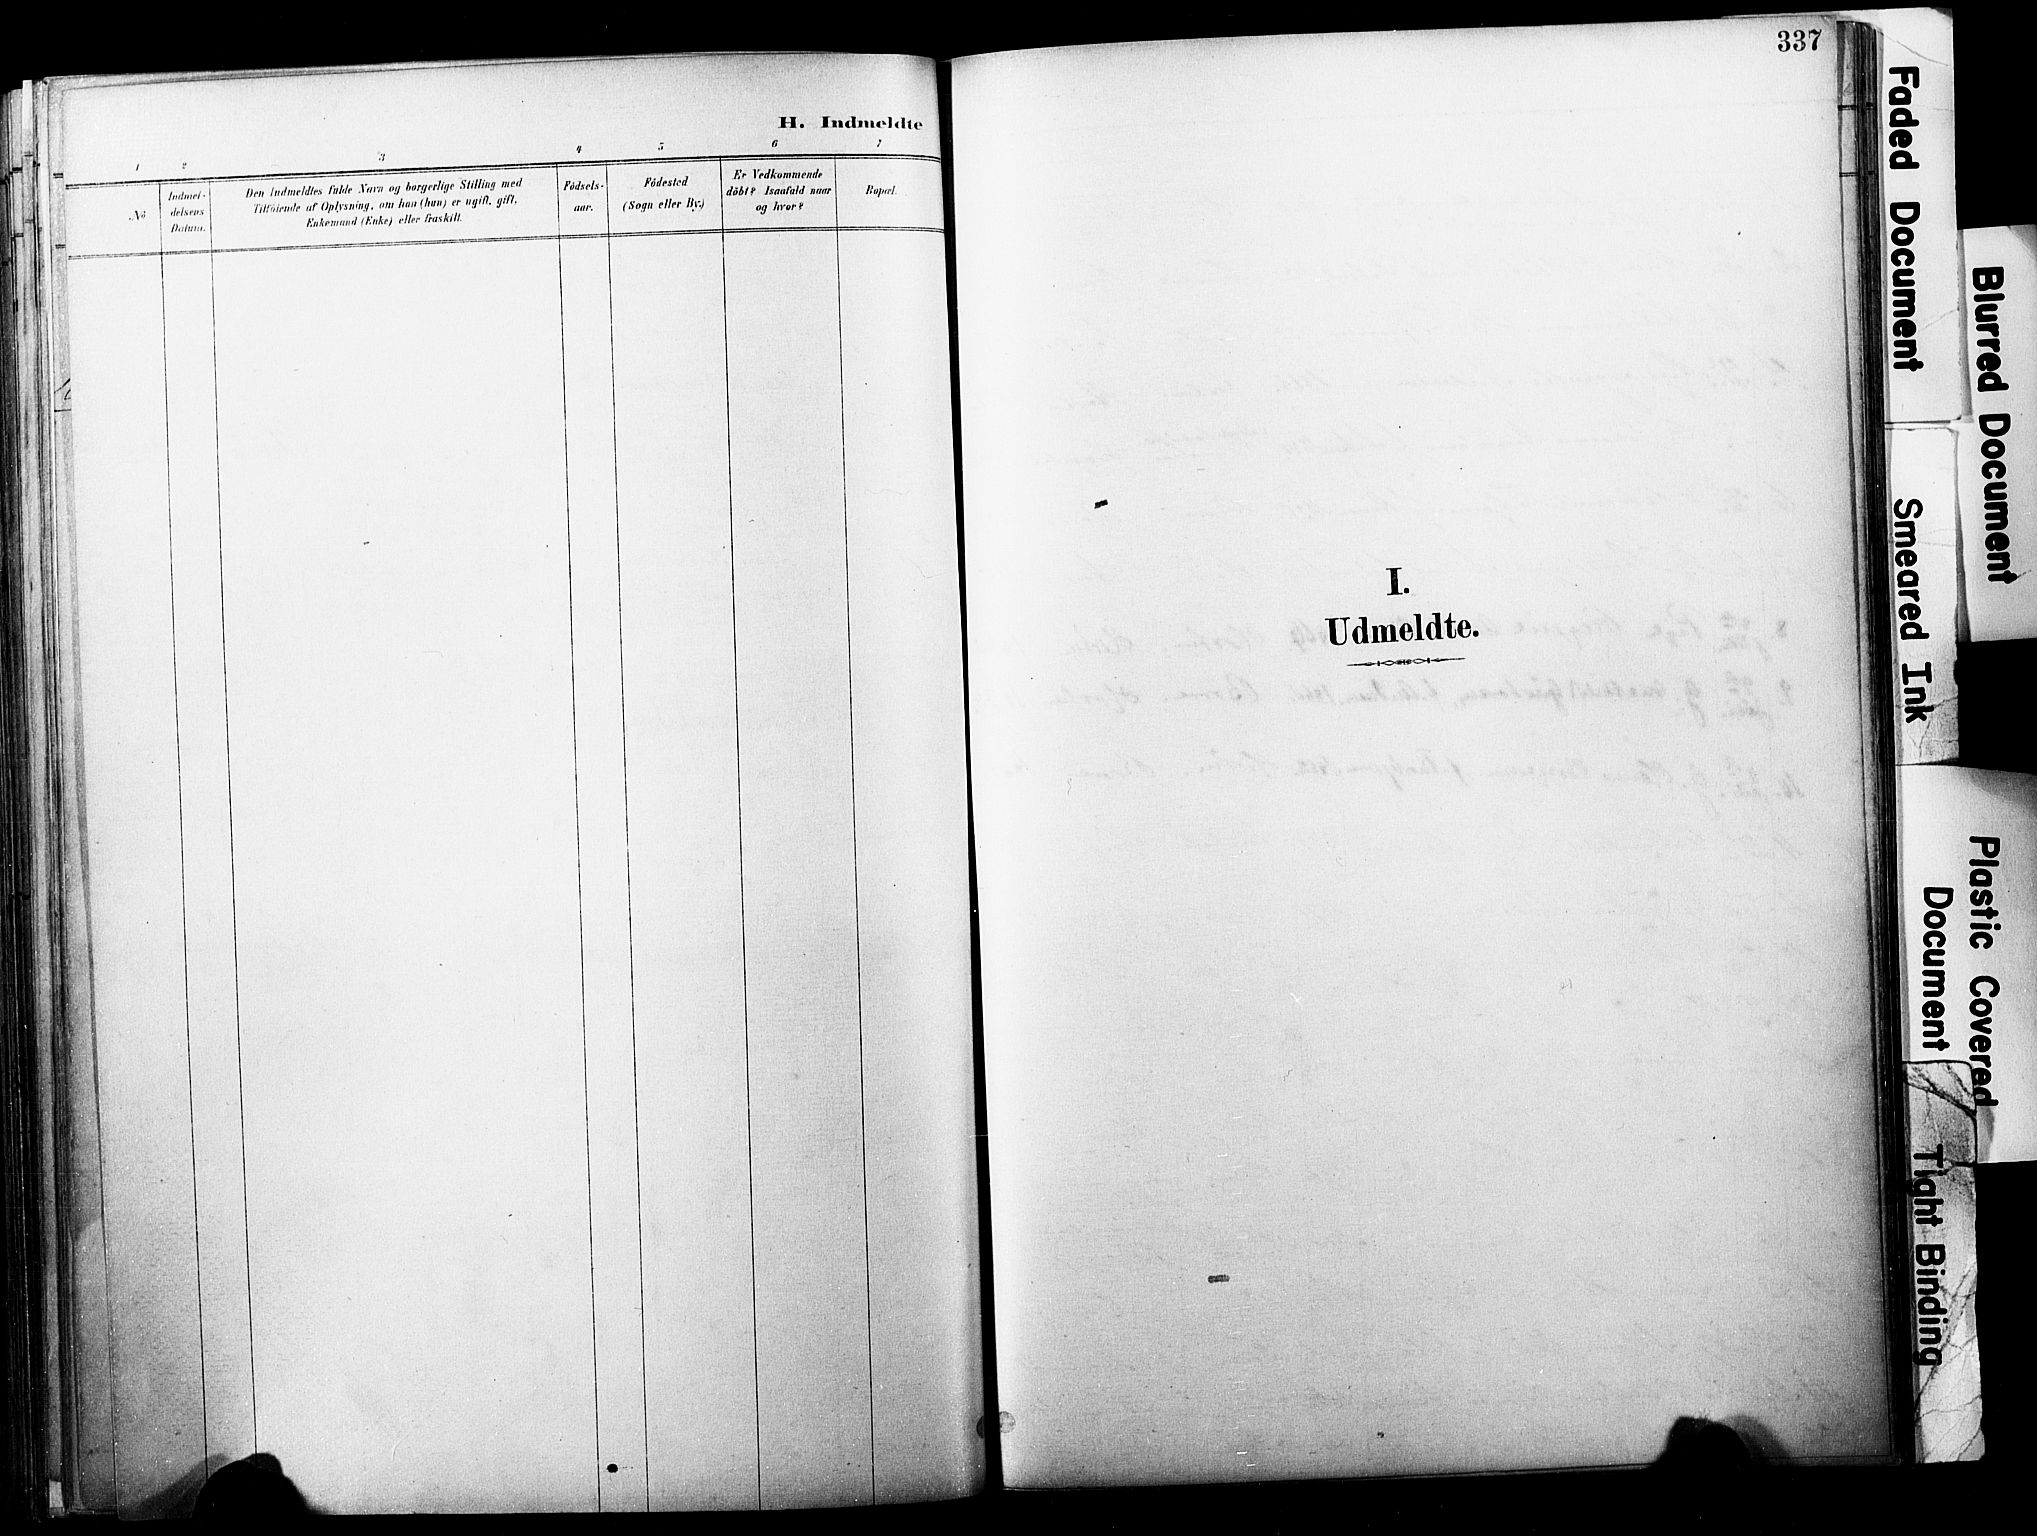 SAKO, Horten kirkebøker, F/Fa/L0004: Parish register (official) no. 4, 1888-1895, p. 337